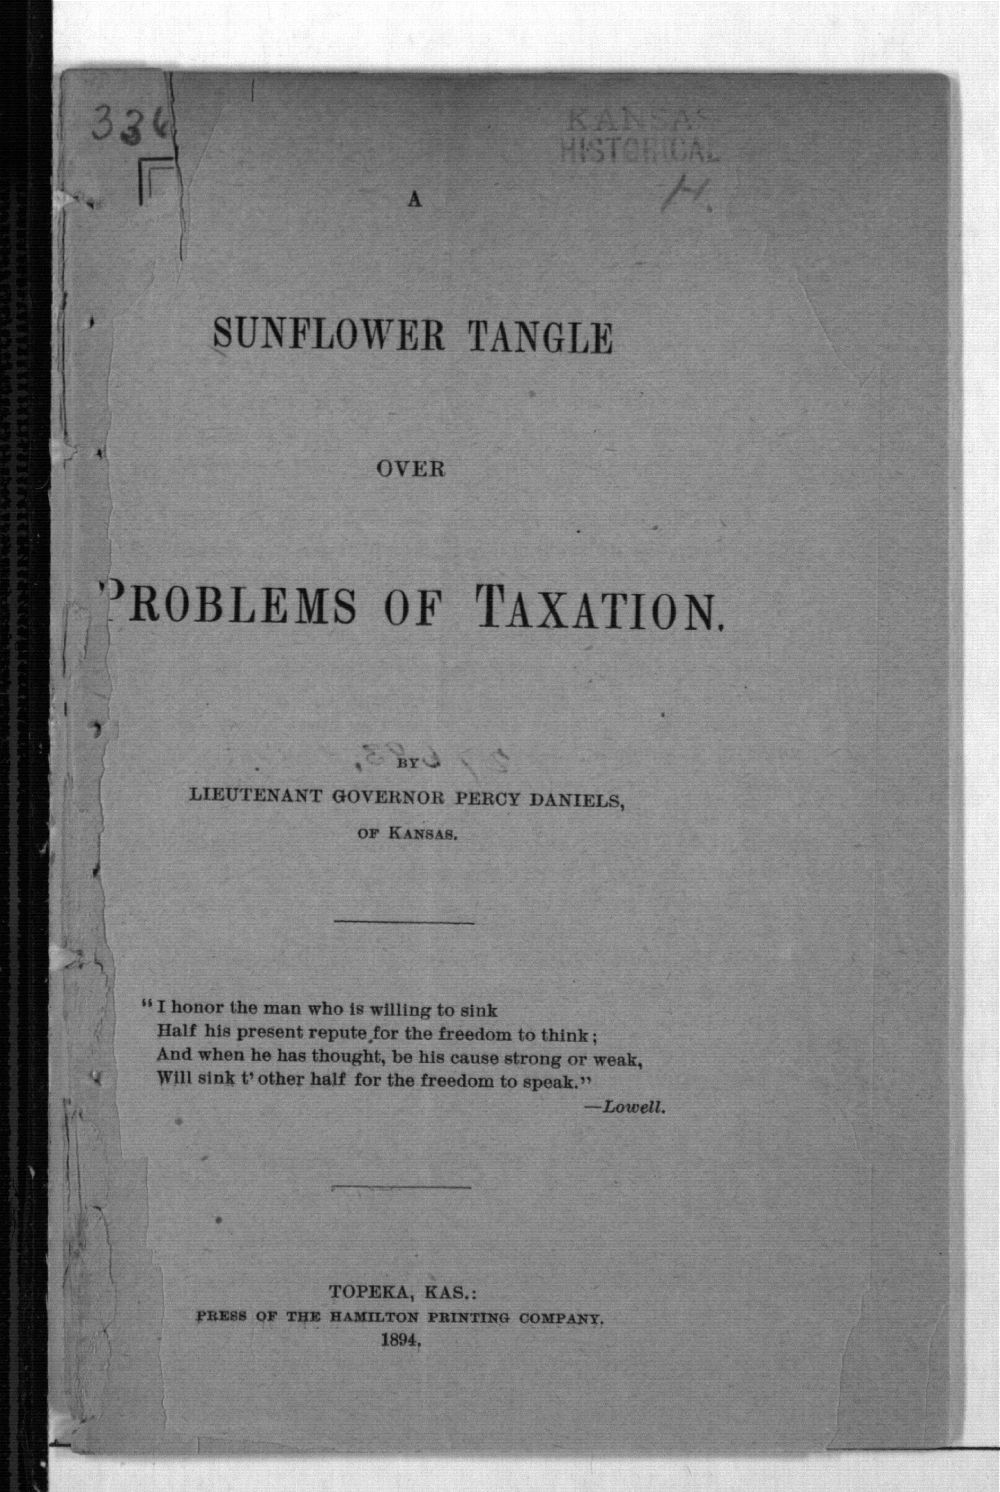 Problems of taxation. A sunflower tangle - Title page